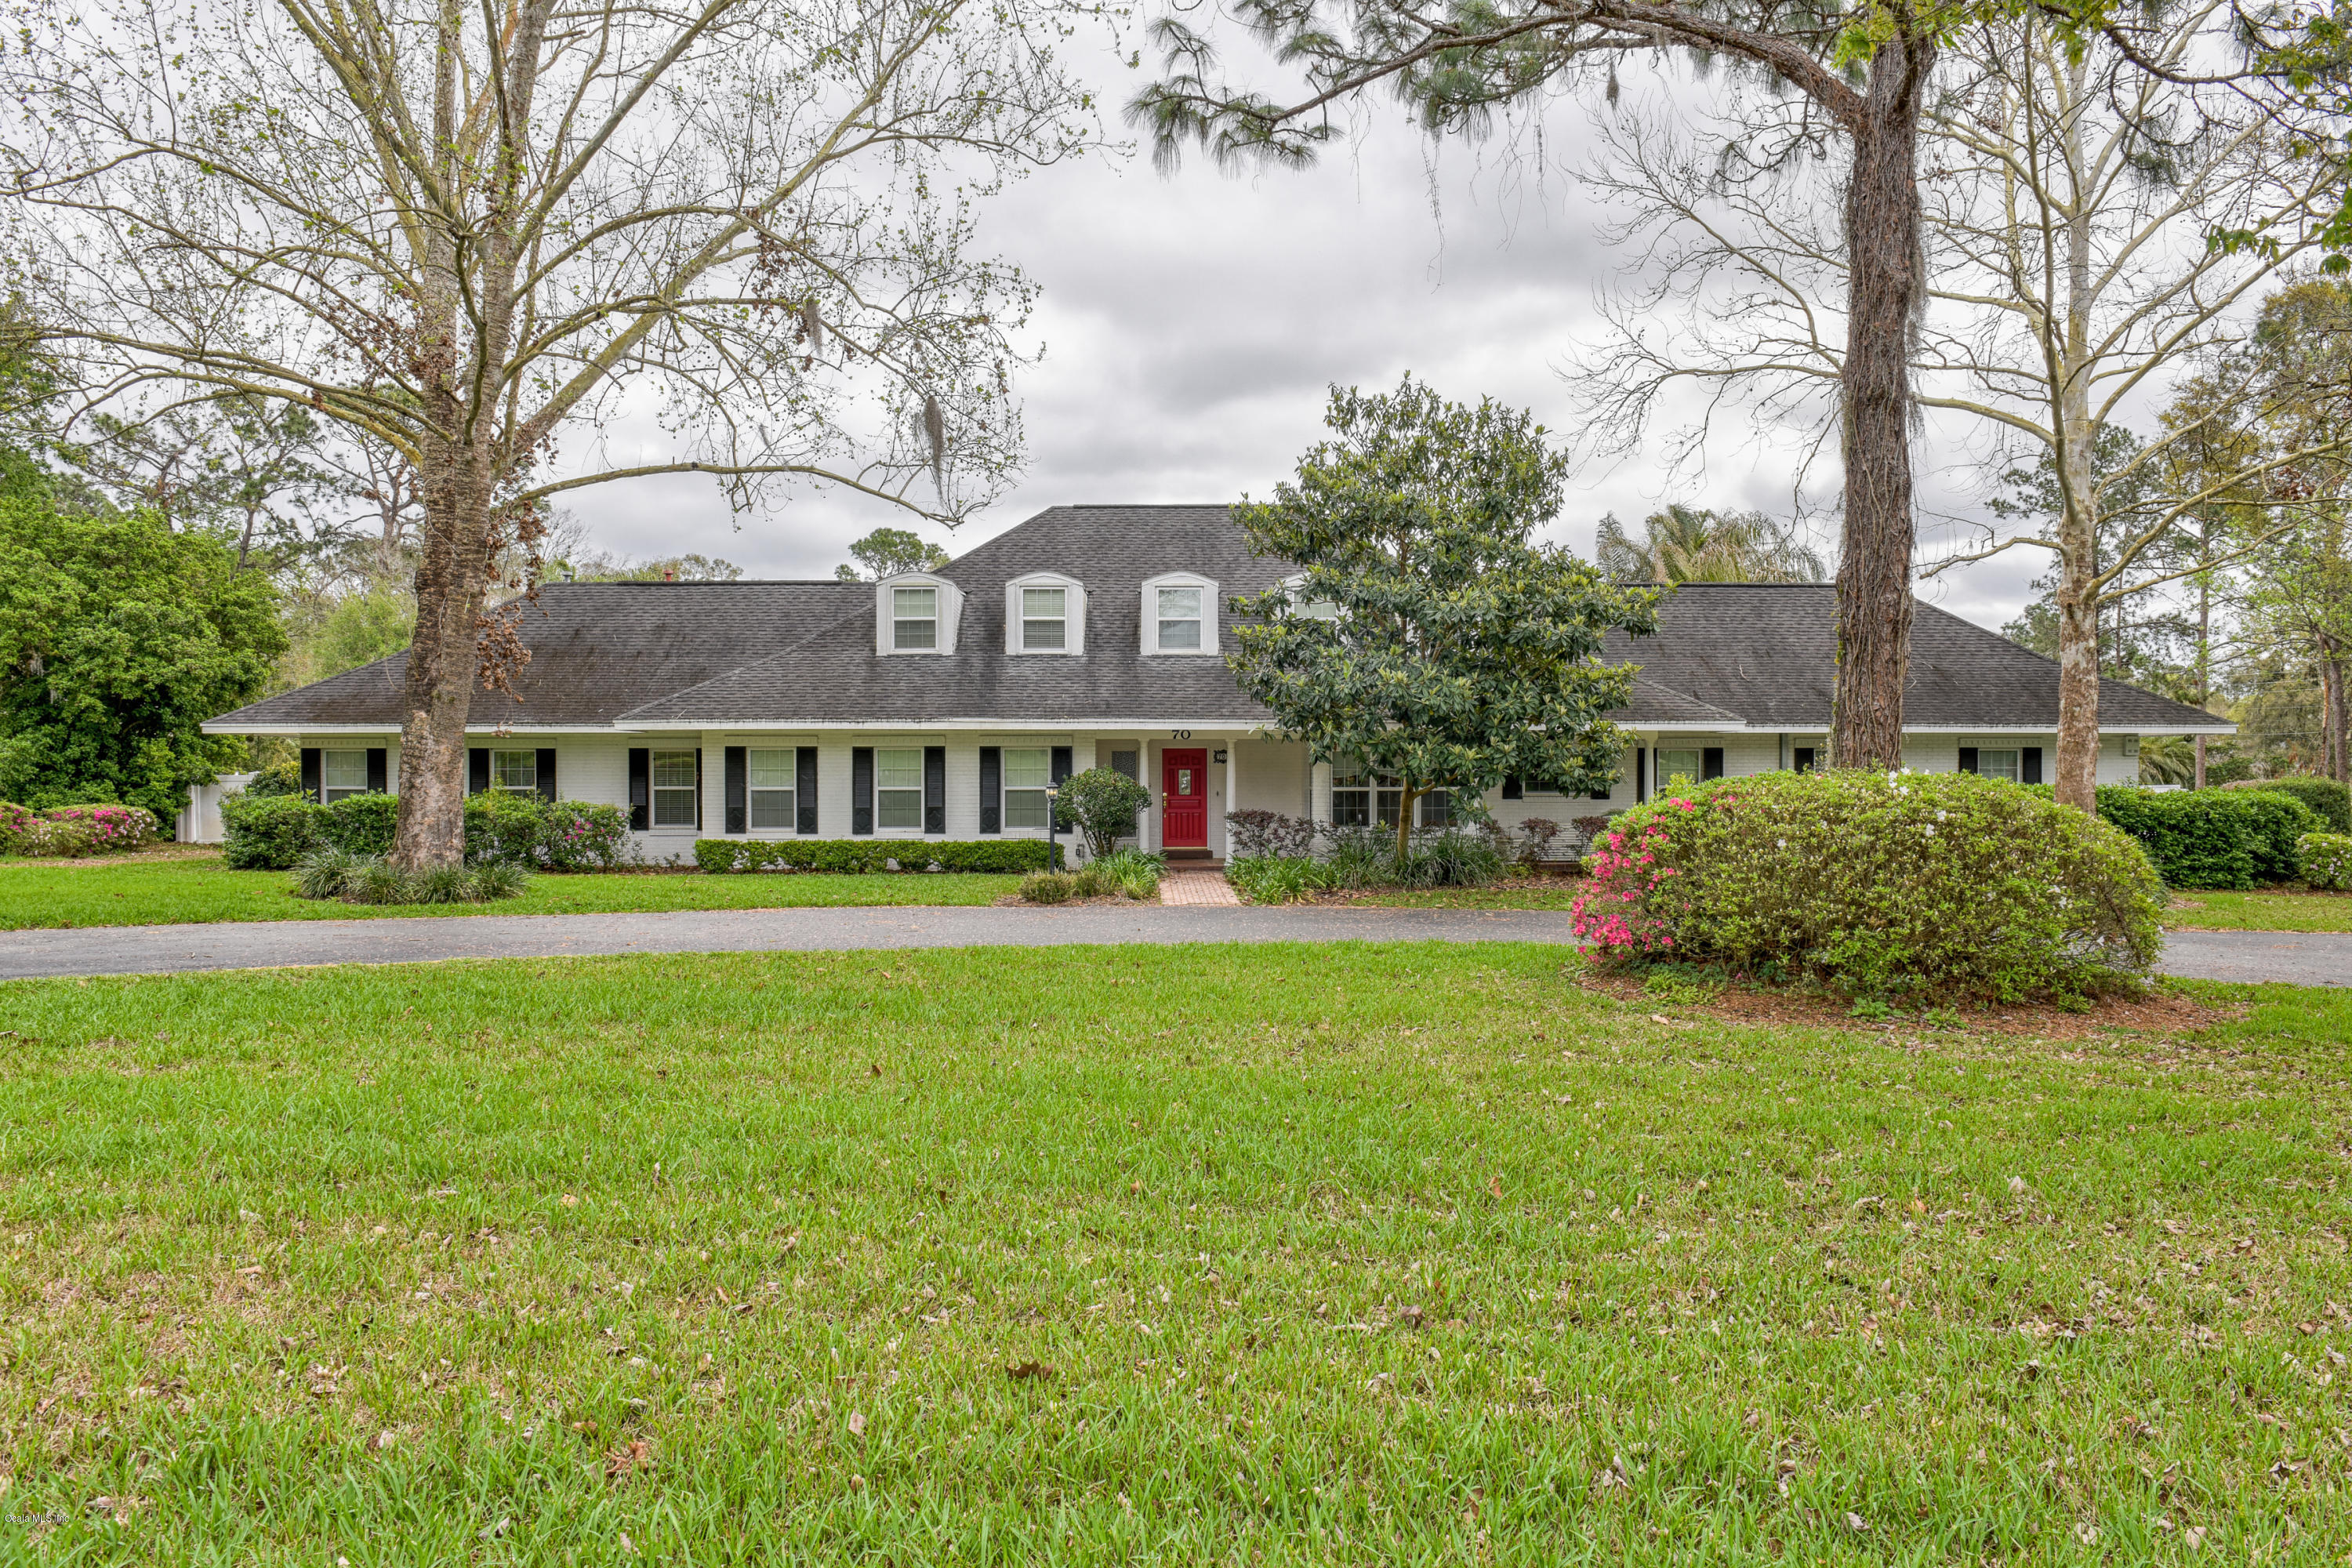 701 SE 48TH AVENUE, OCALA, FL 34471